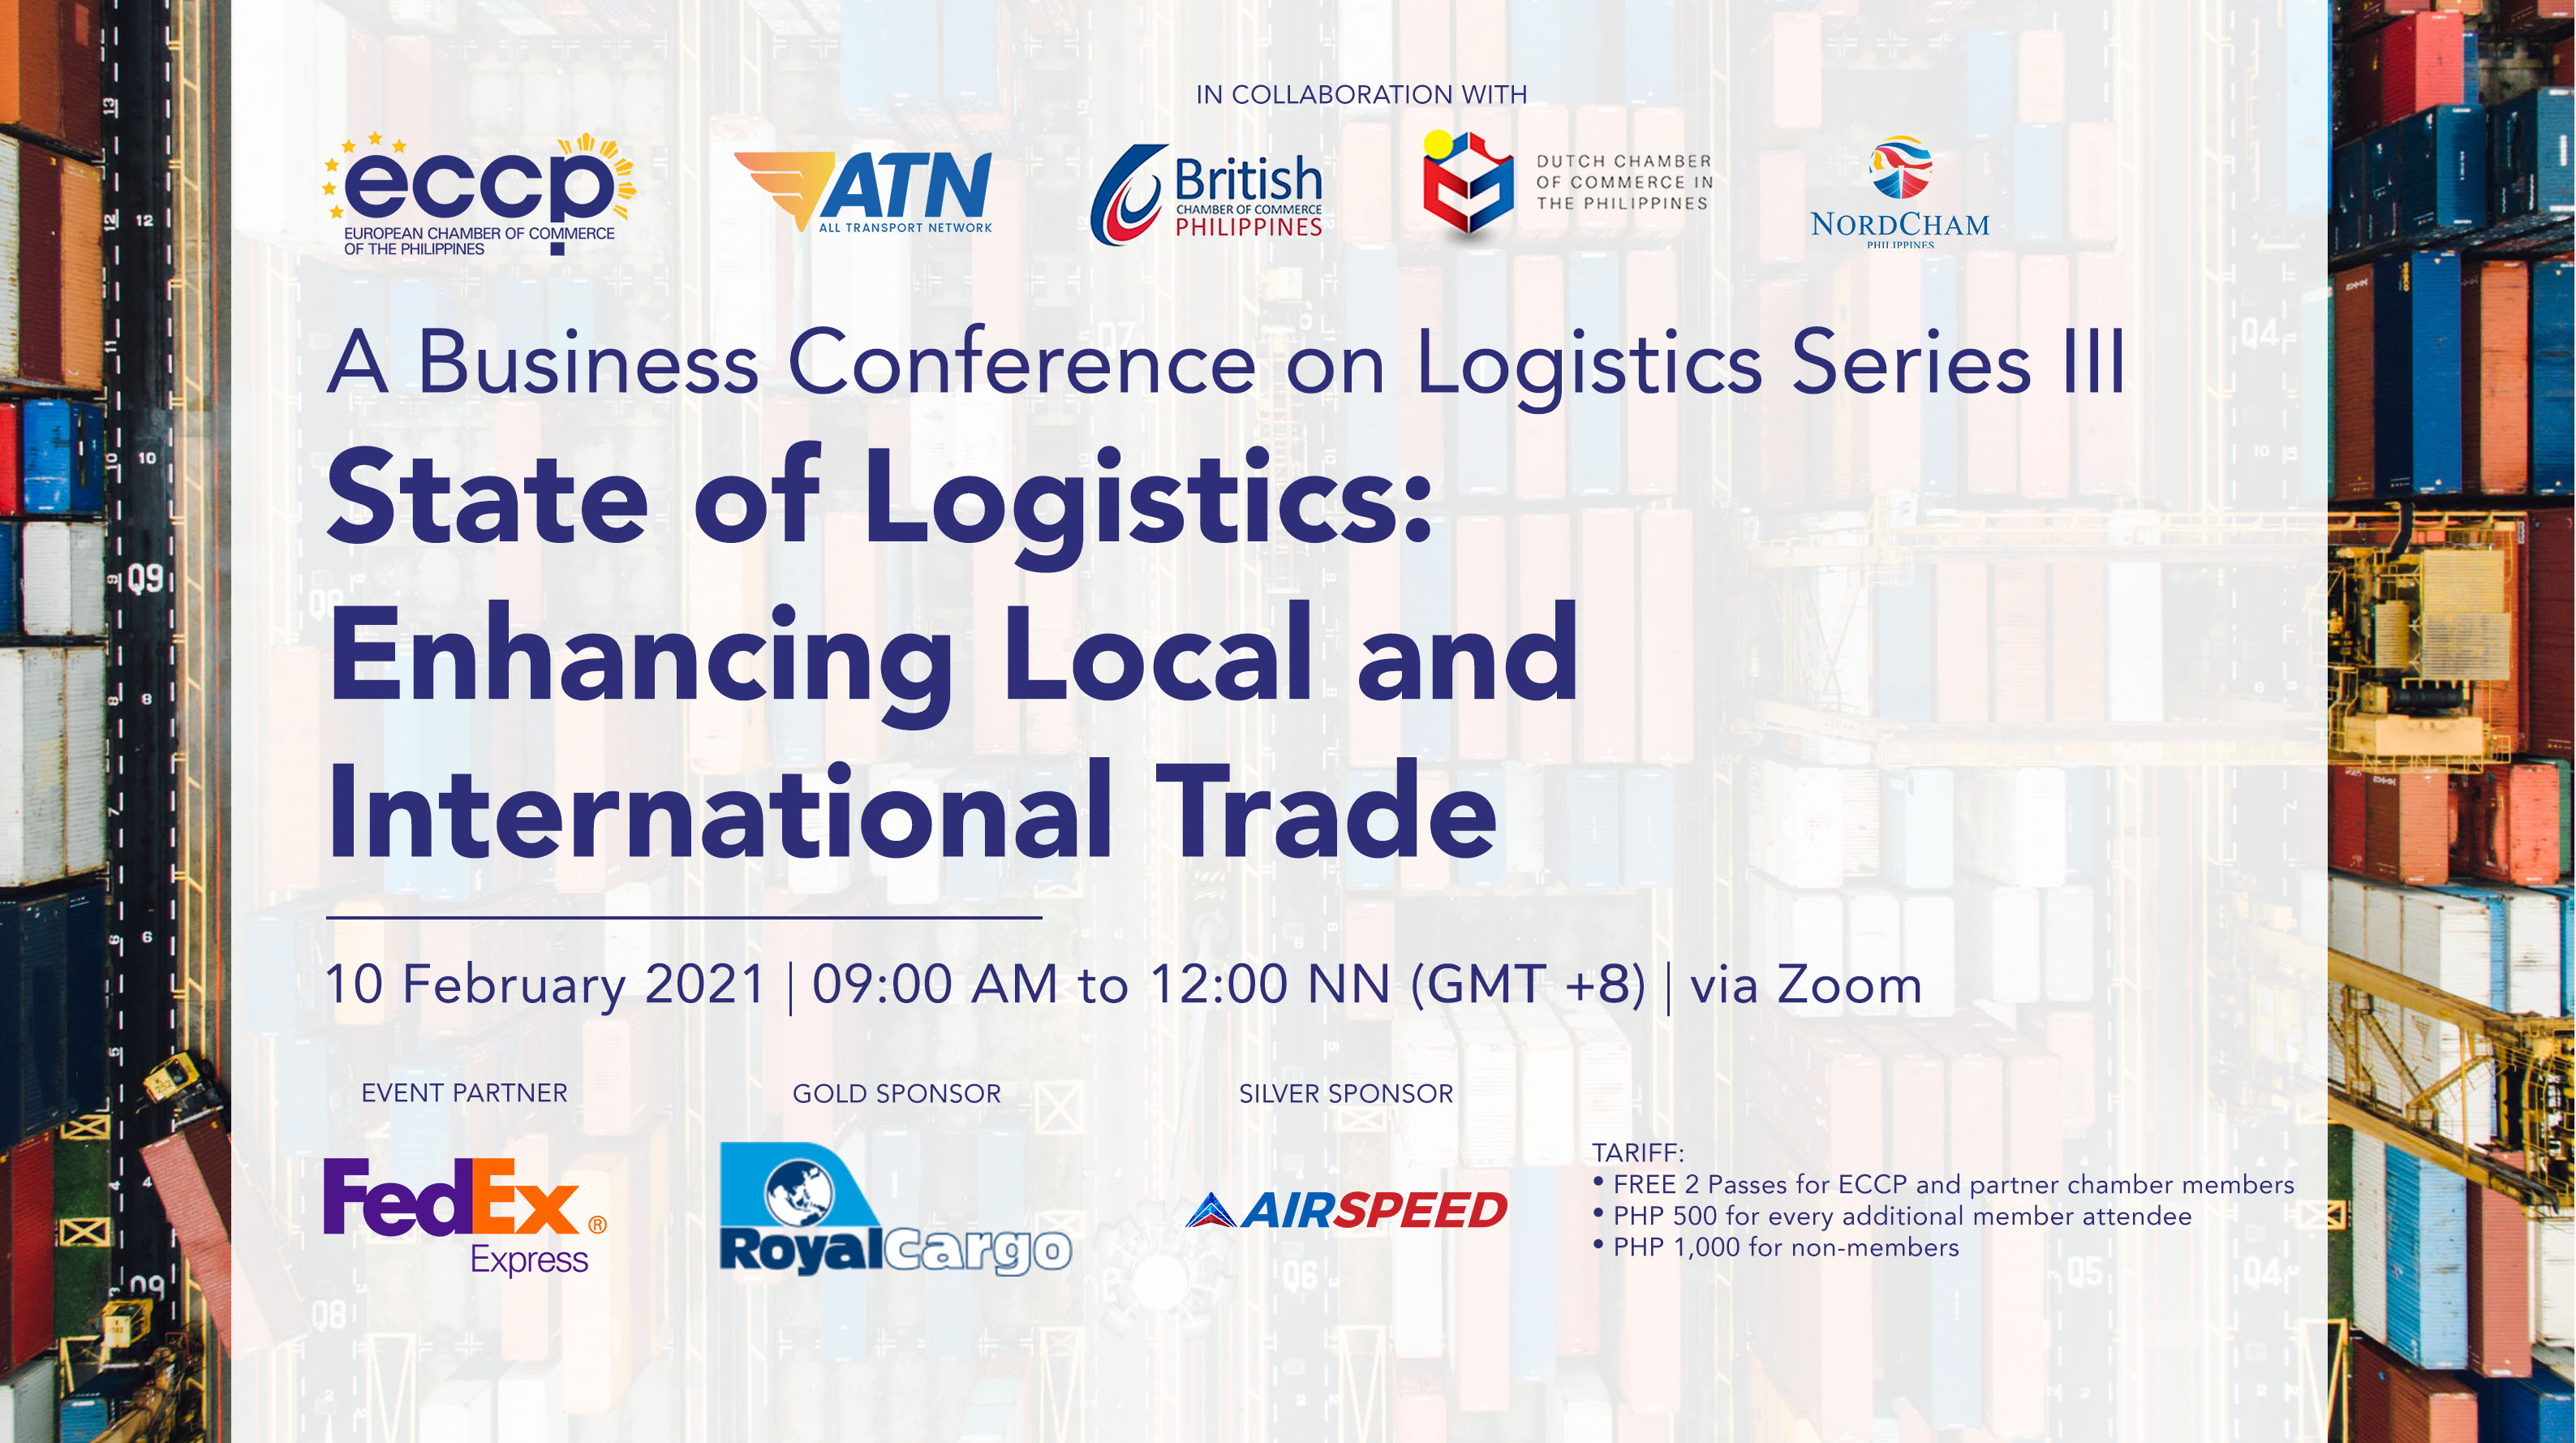 Enhancing Local and International Trade